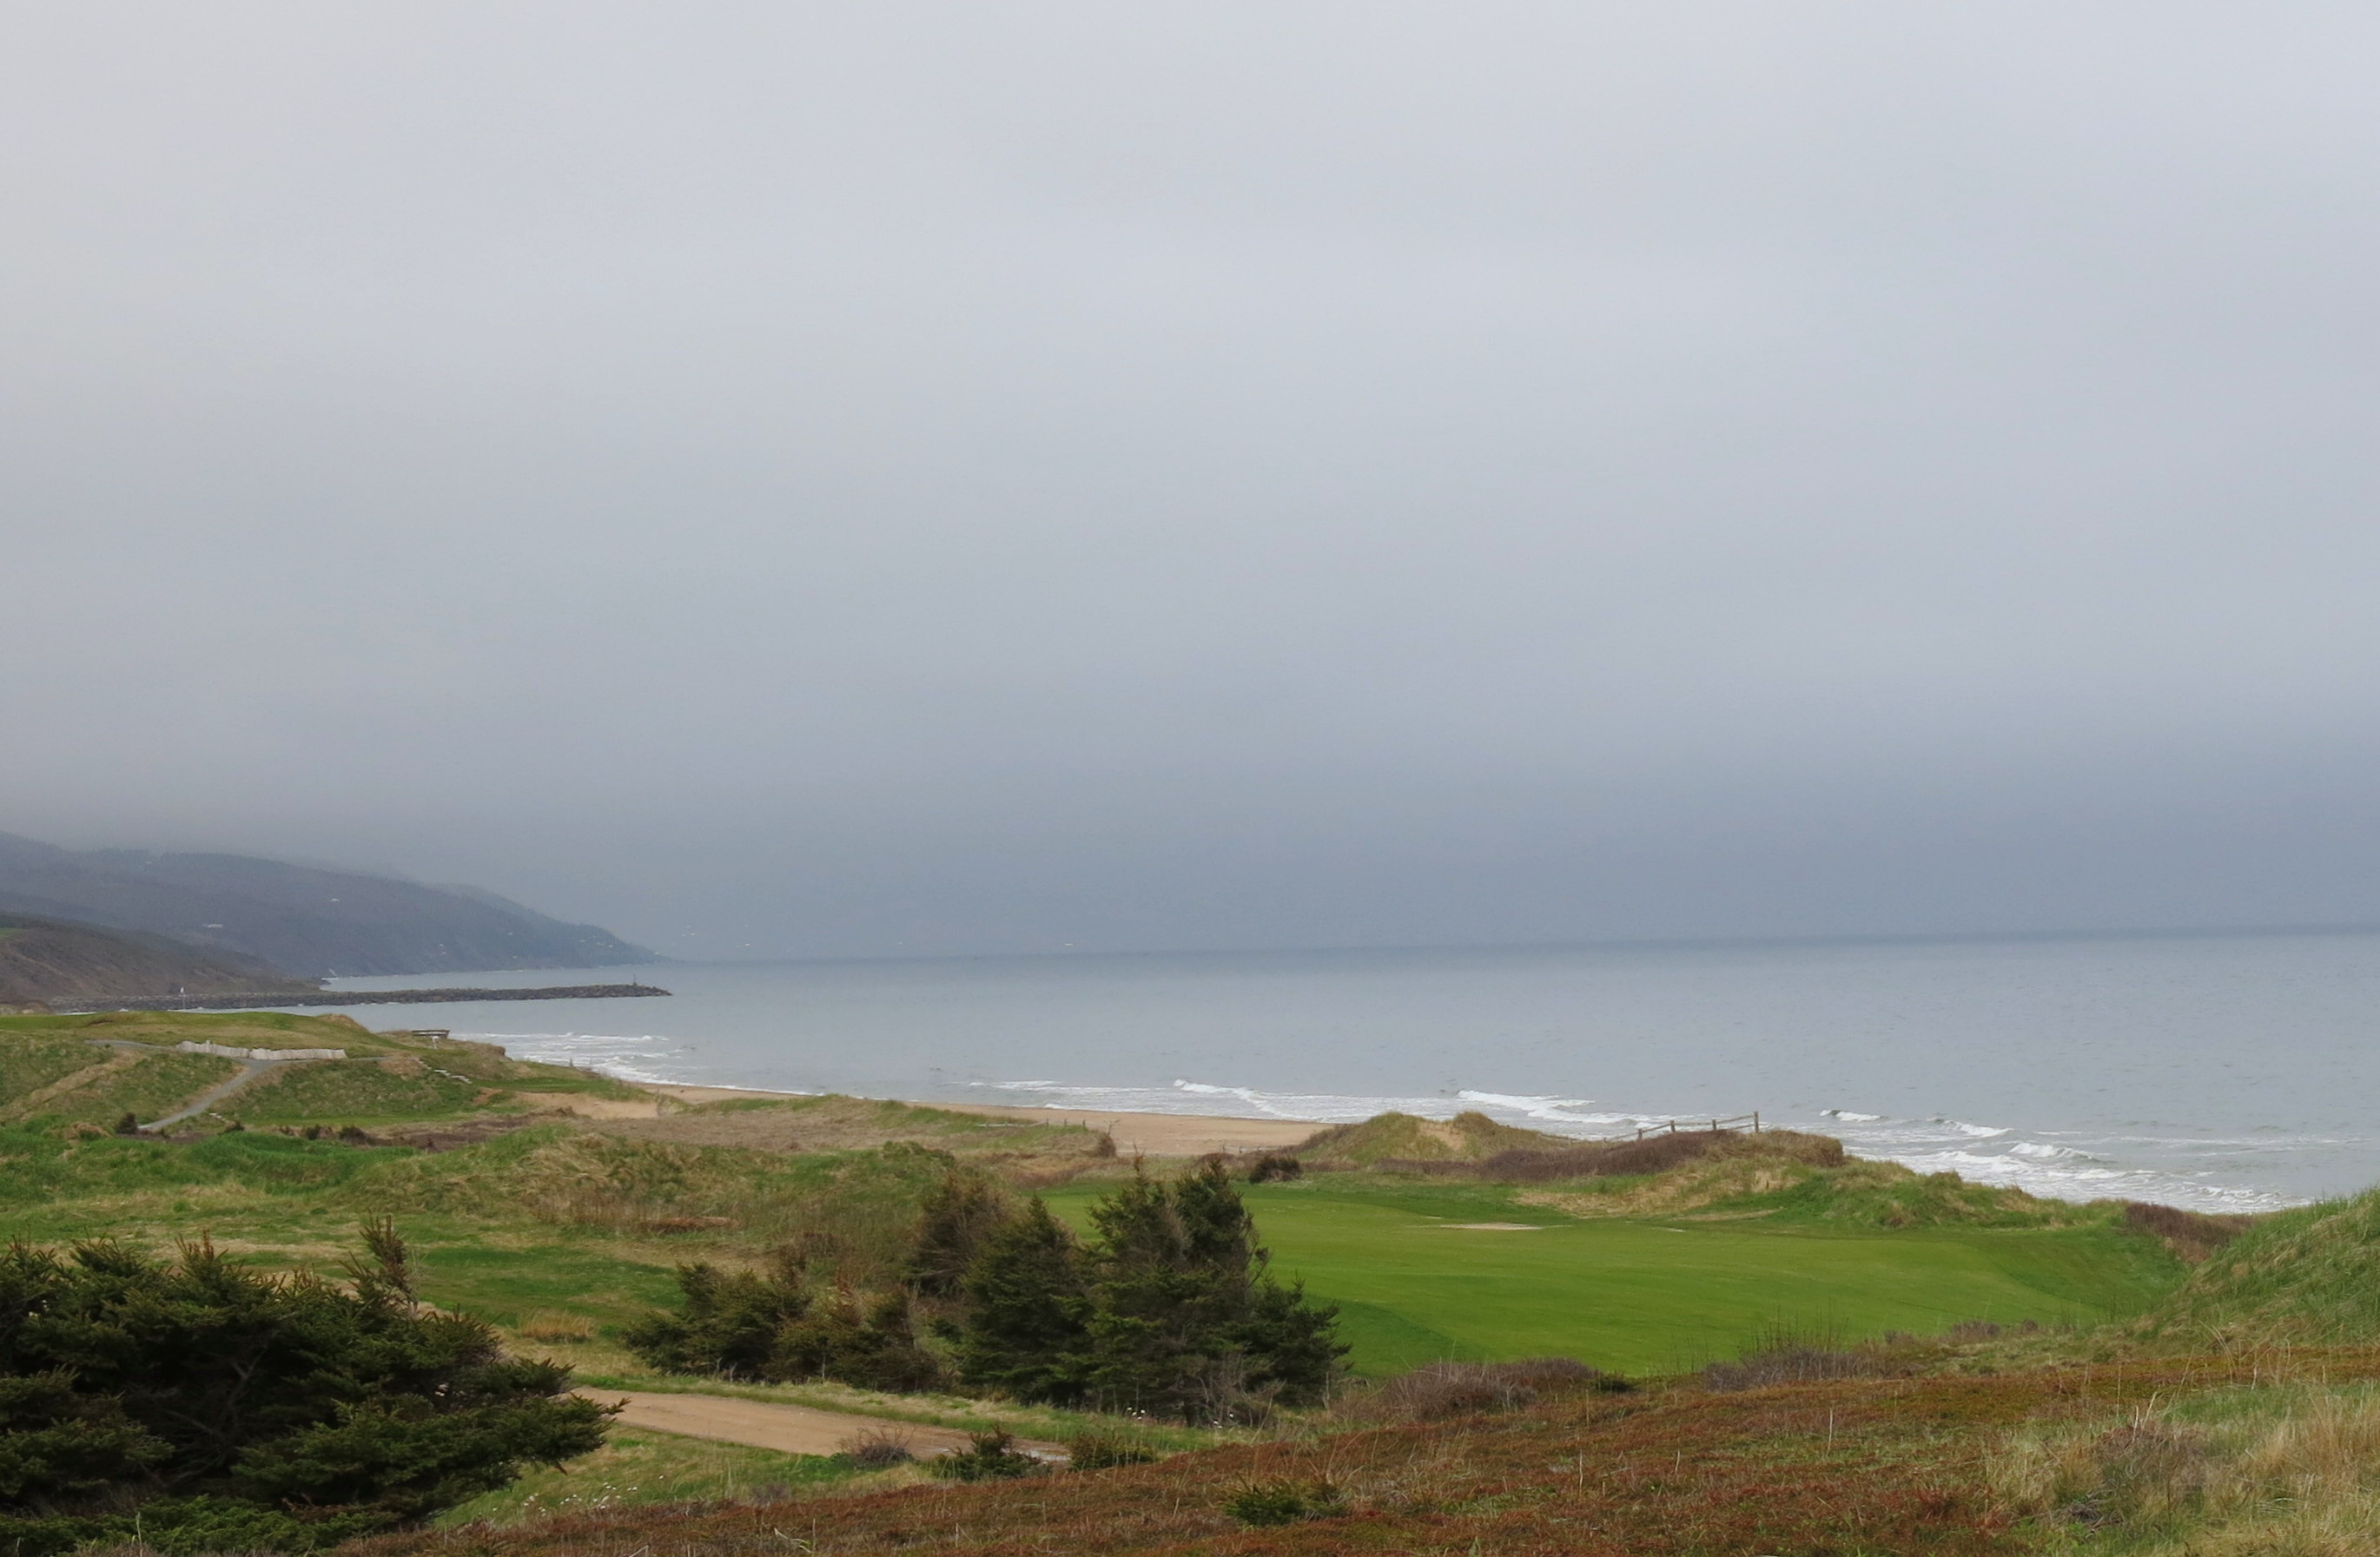 Cabot Links and next-door Cabot Cliffs are two of the top golf courses in Canada. Both are located on Cape Breton. JIM BYERS PHOTO